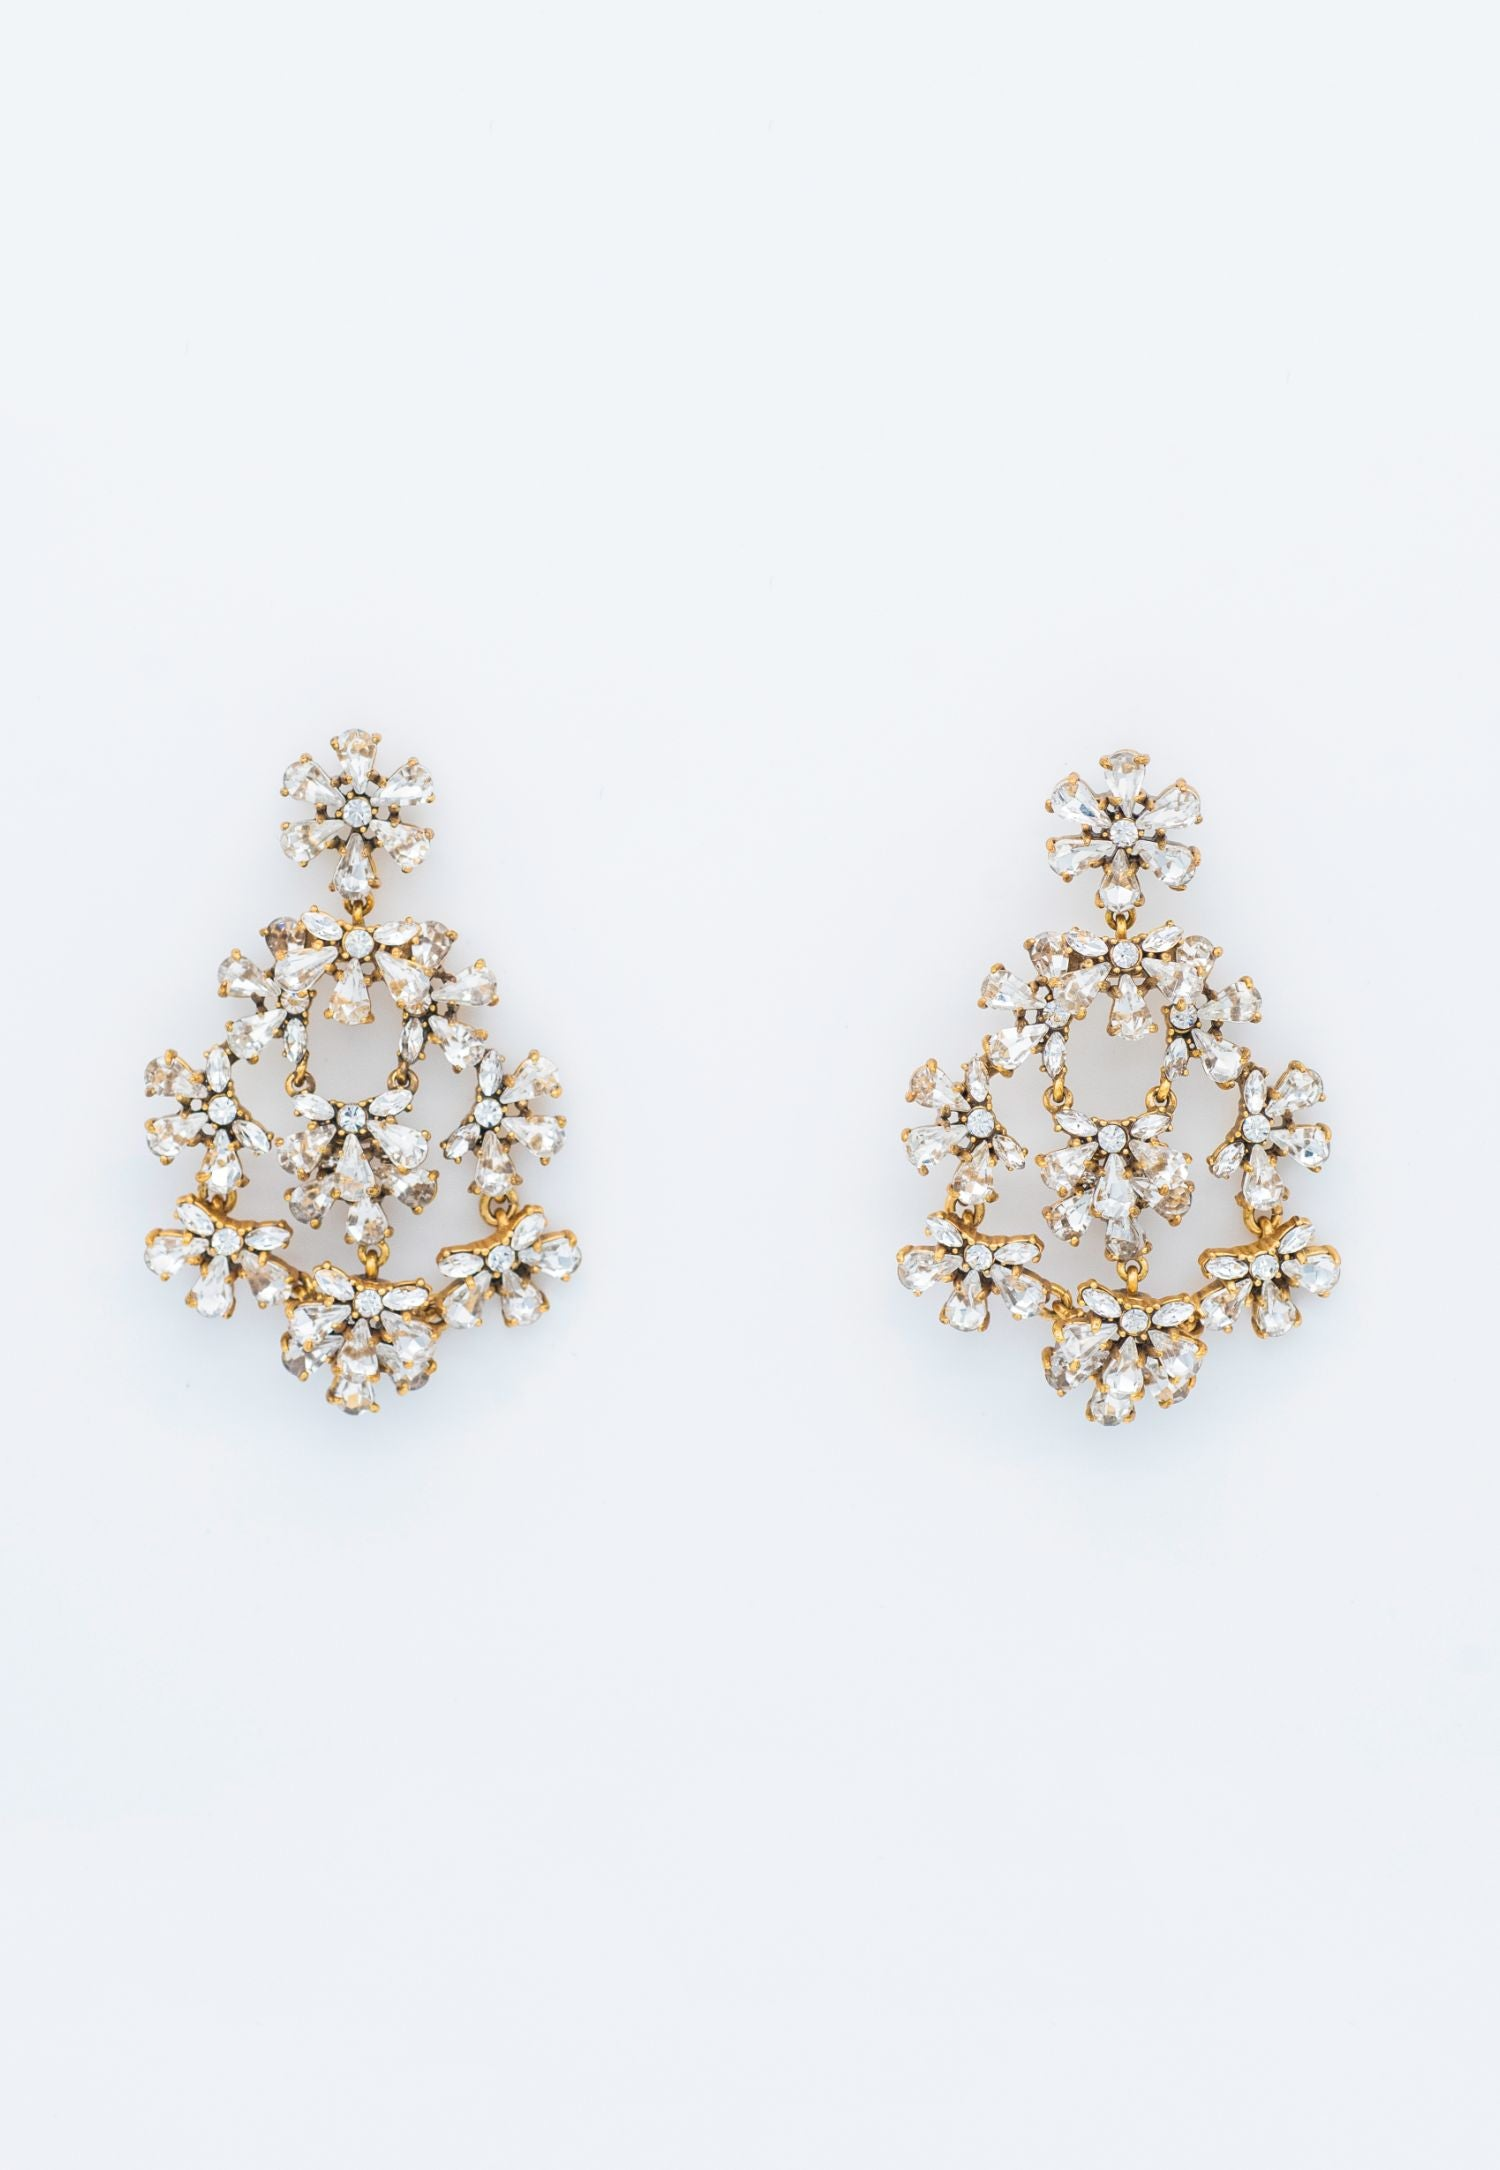 RHINESTONE STUDDED CHANDELIER EARRINGS